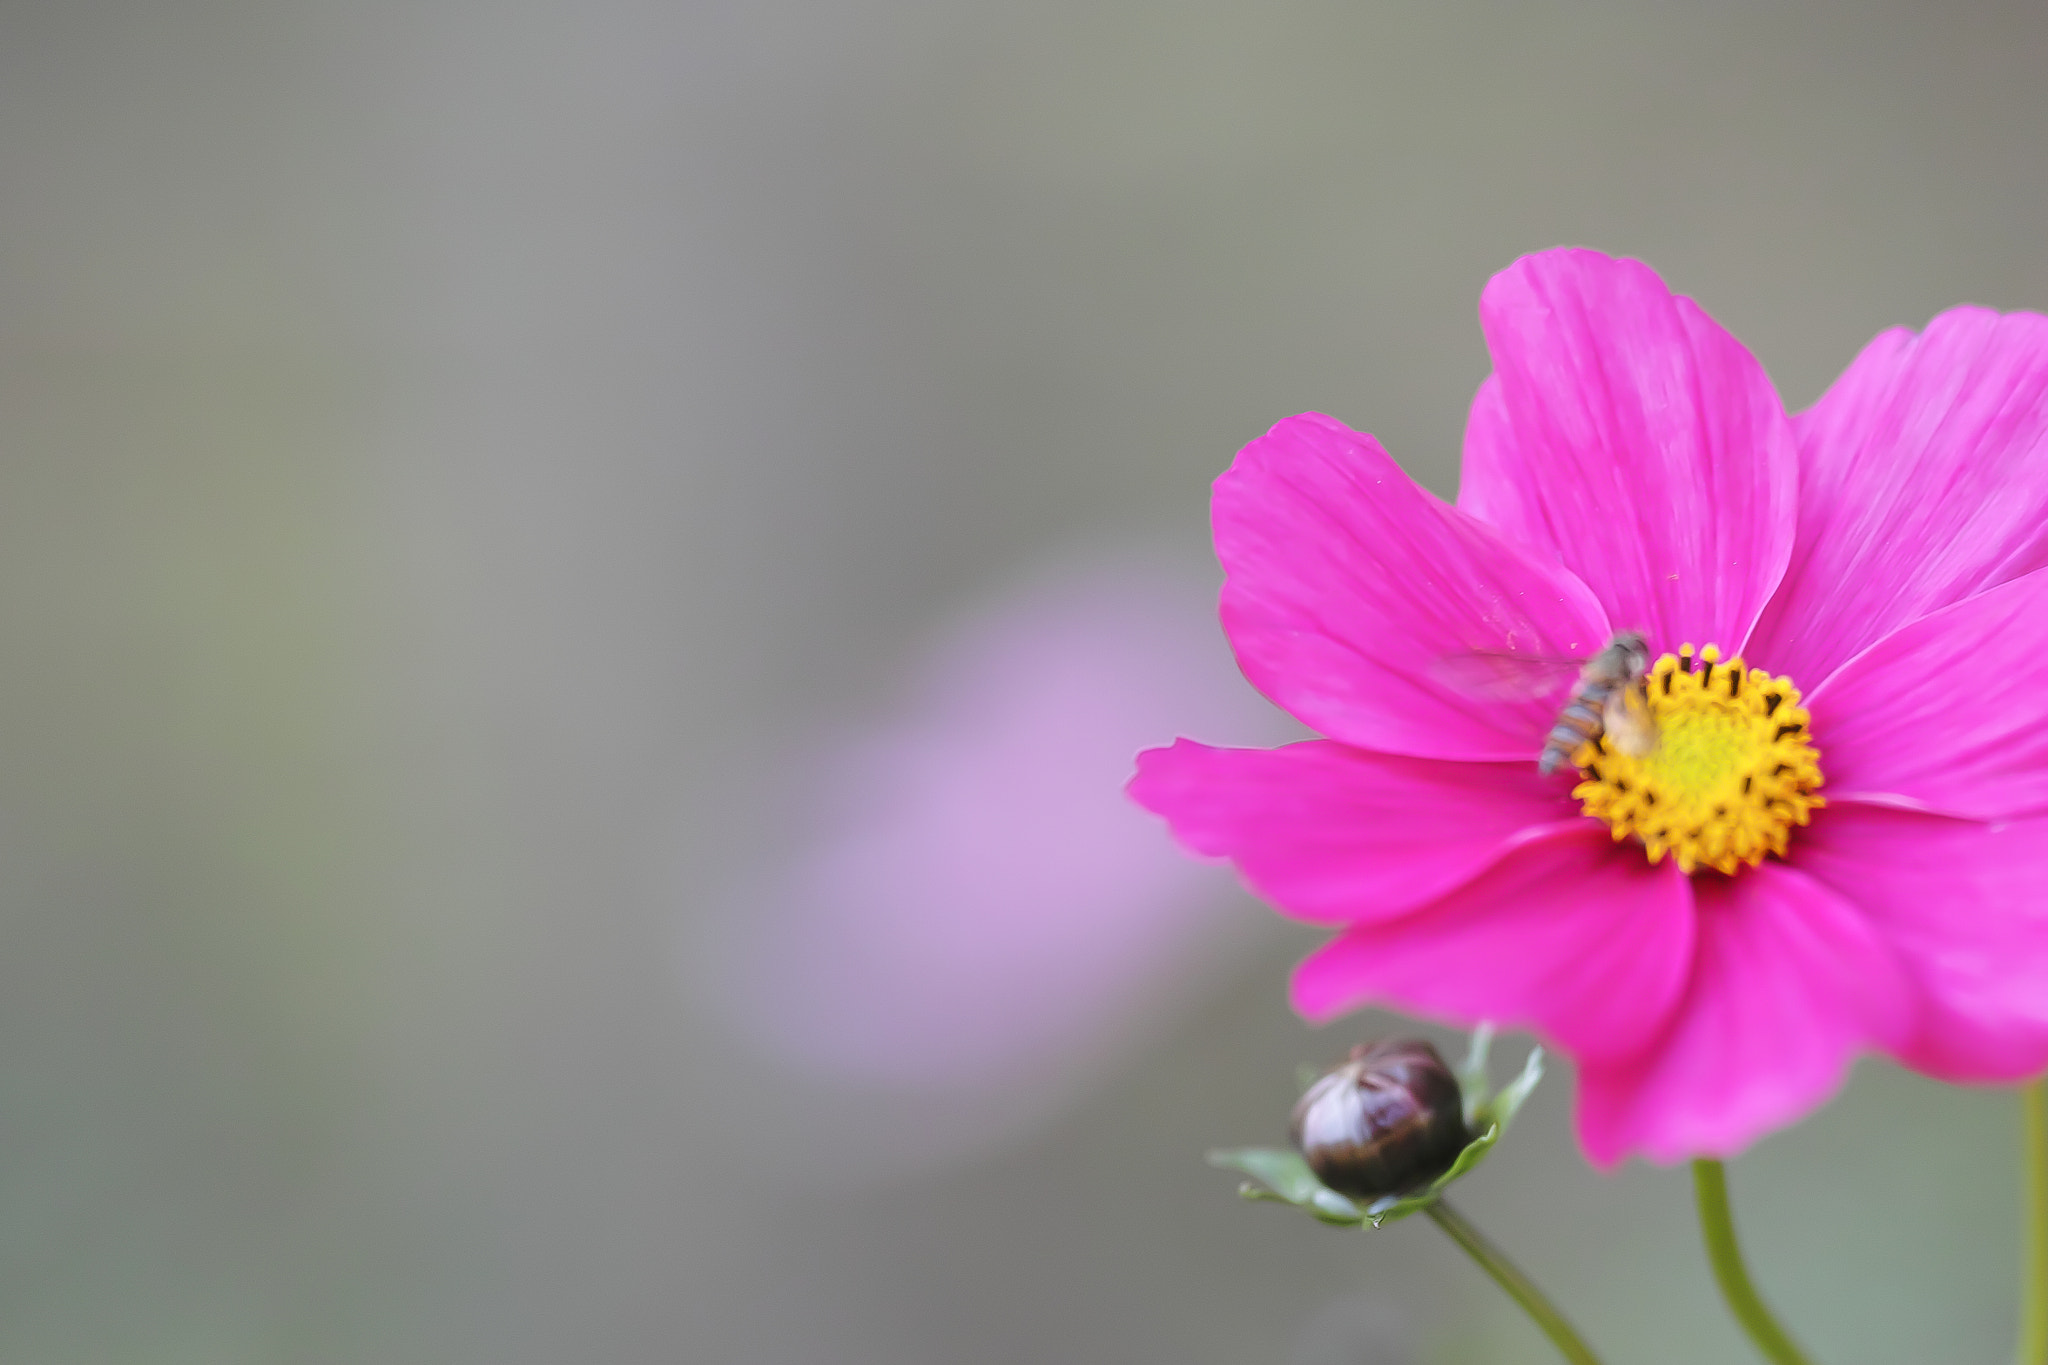 Photograph Cosmos by marbee .info on 500px